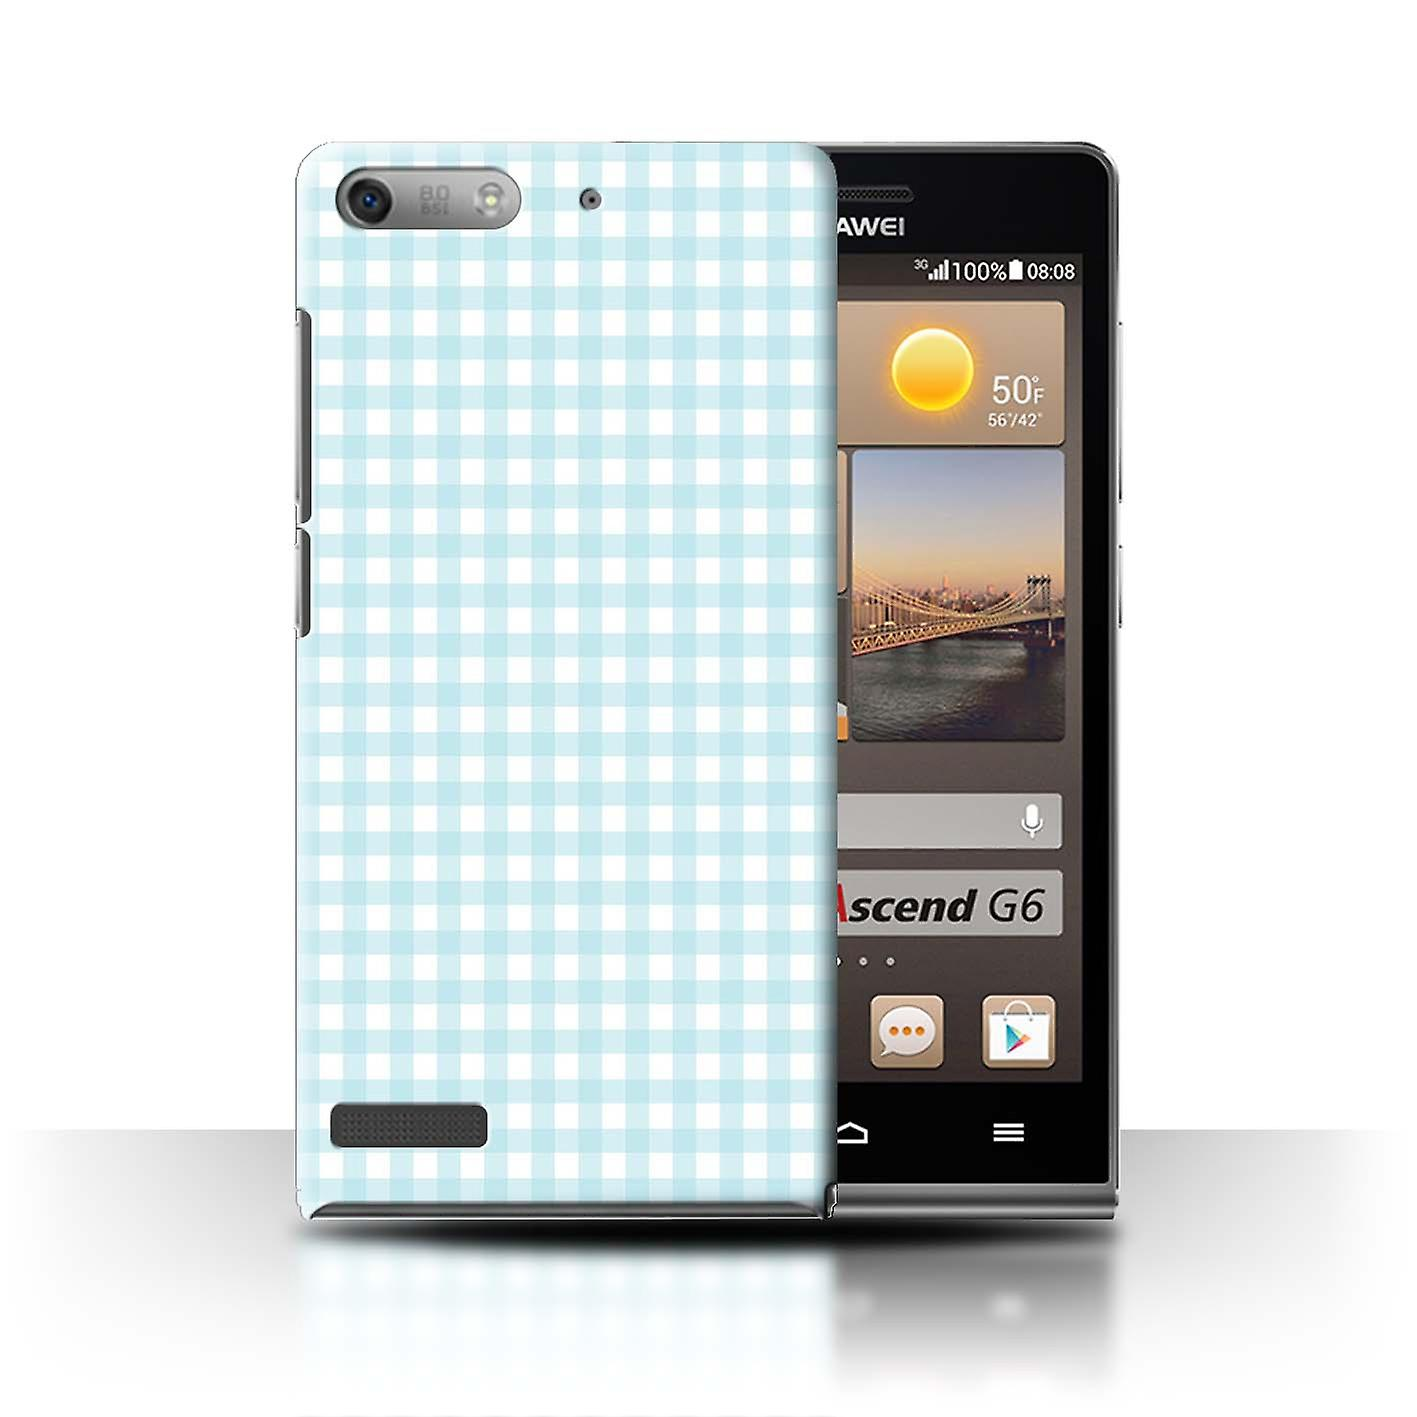 How to Hard Reset my phone  HUAWEI Ascend G6  HardResetinfo